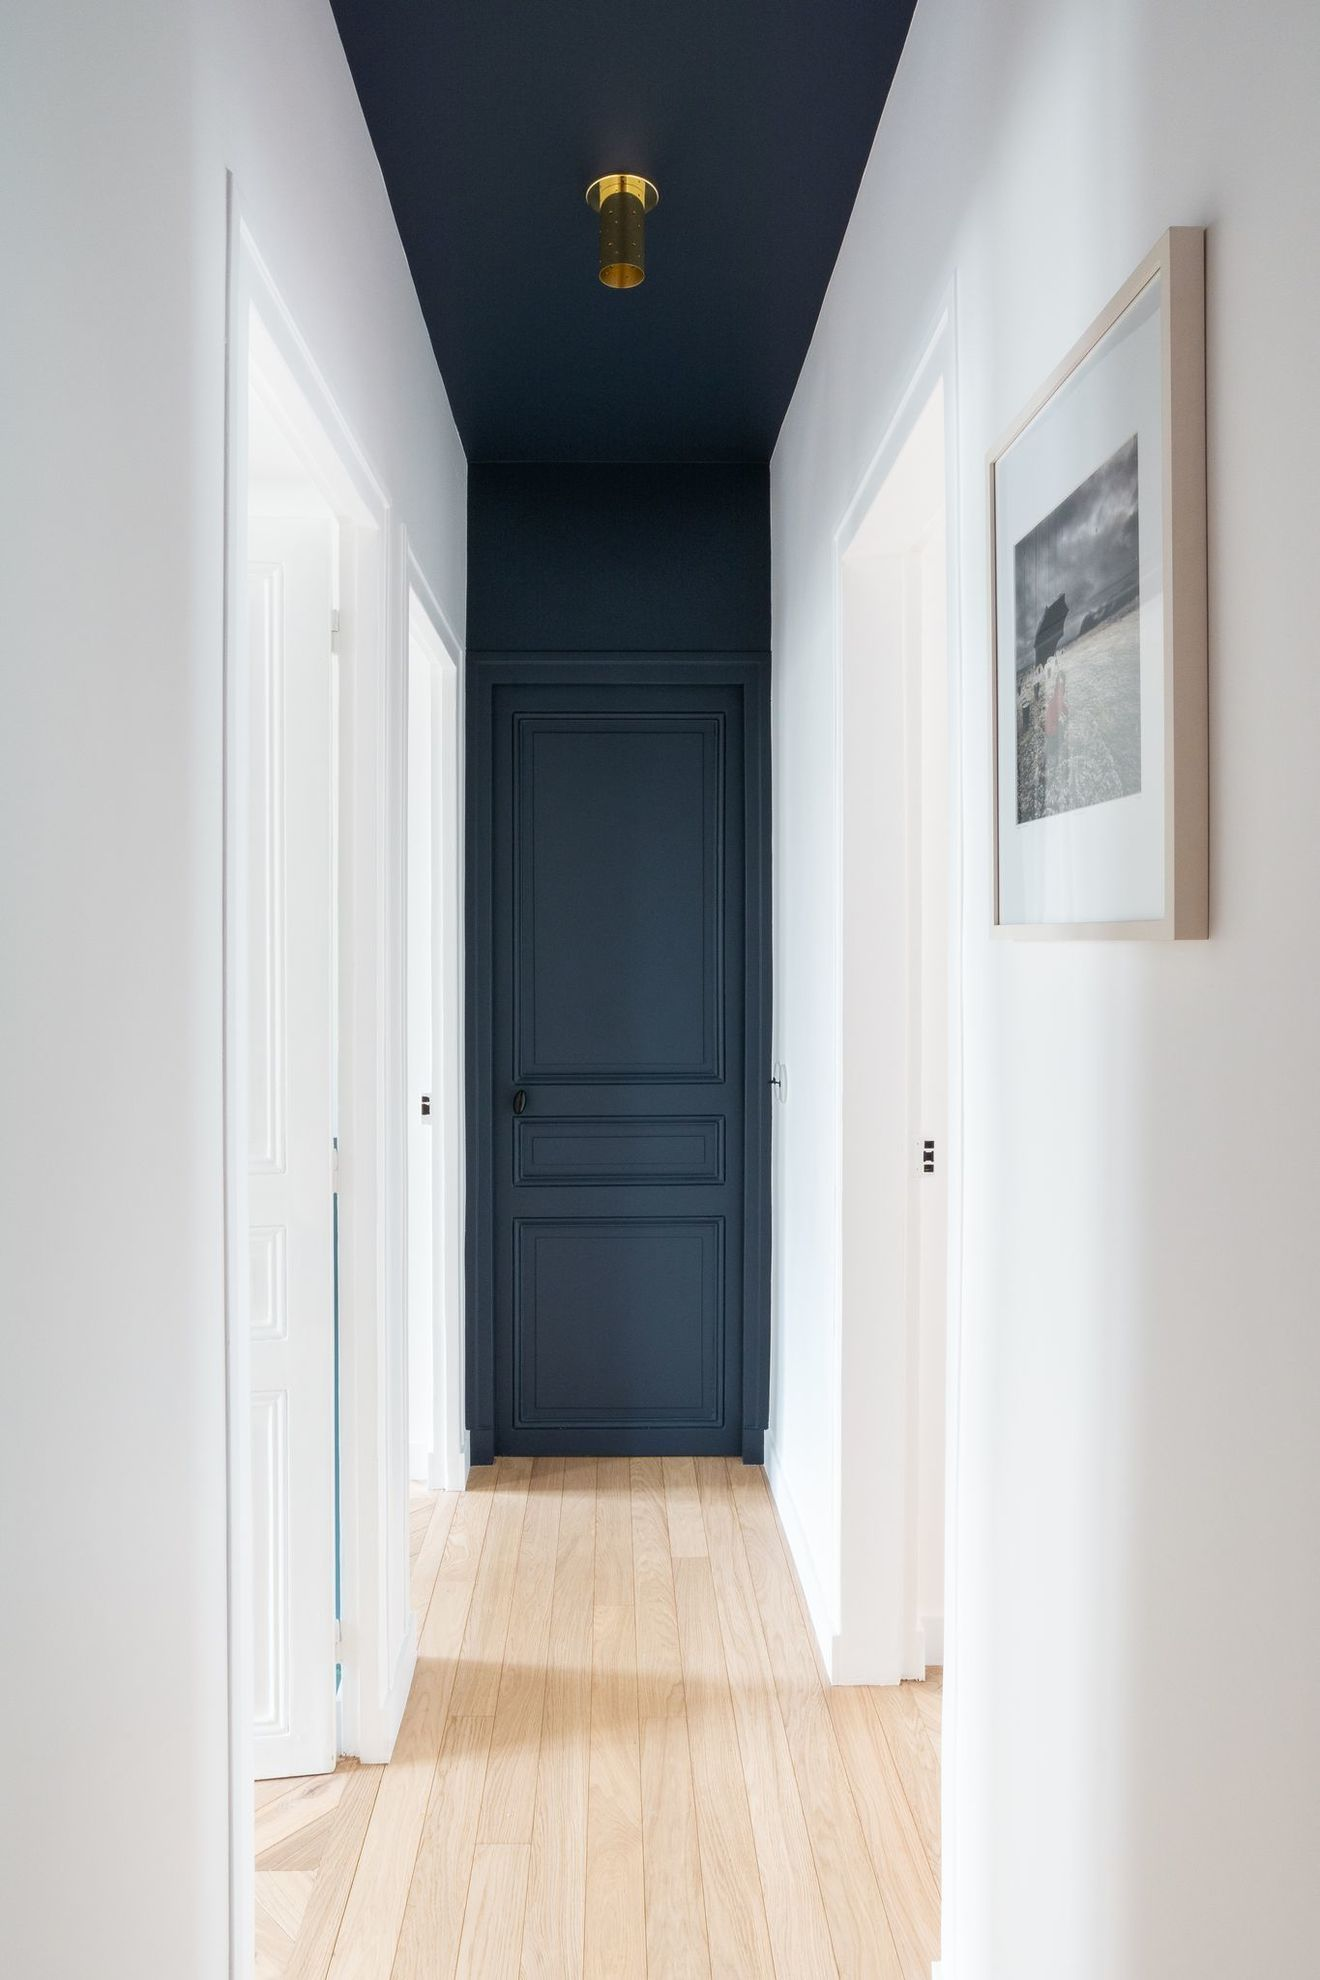 Photo of Appartement Neuilly sur Seine : un haussmannien modernisé en couleurs – #Appart…